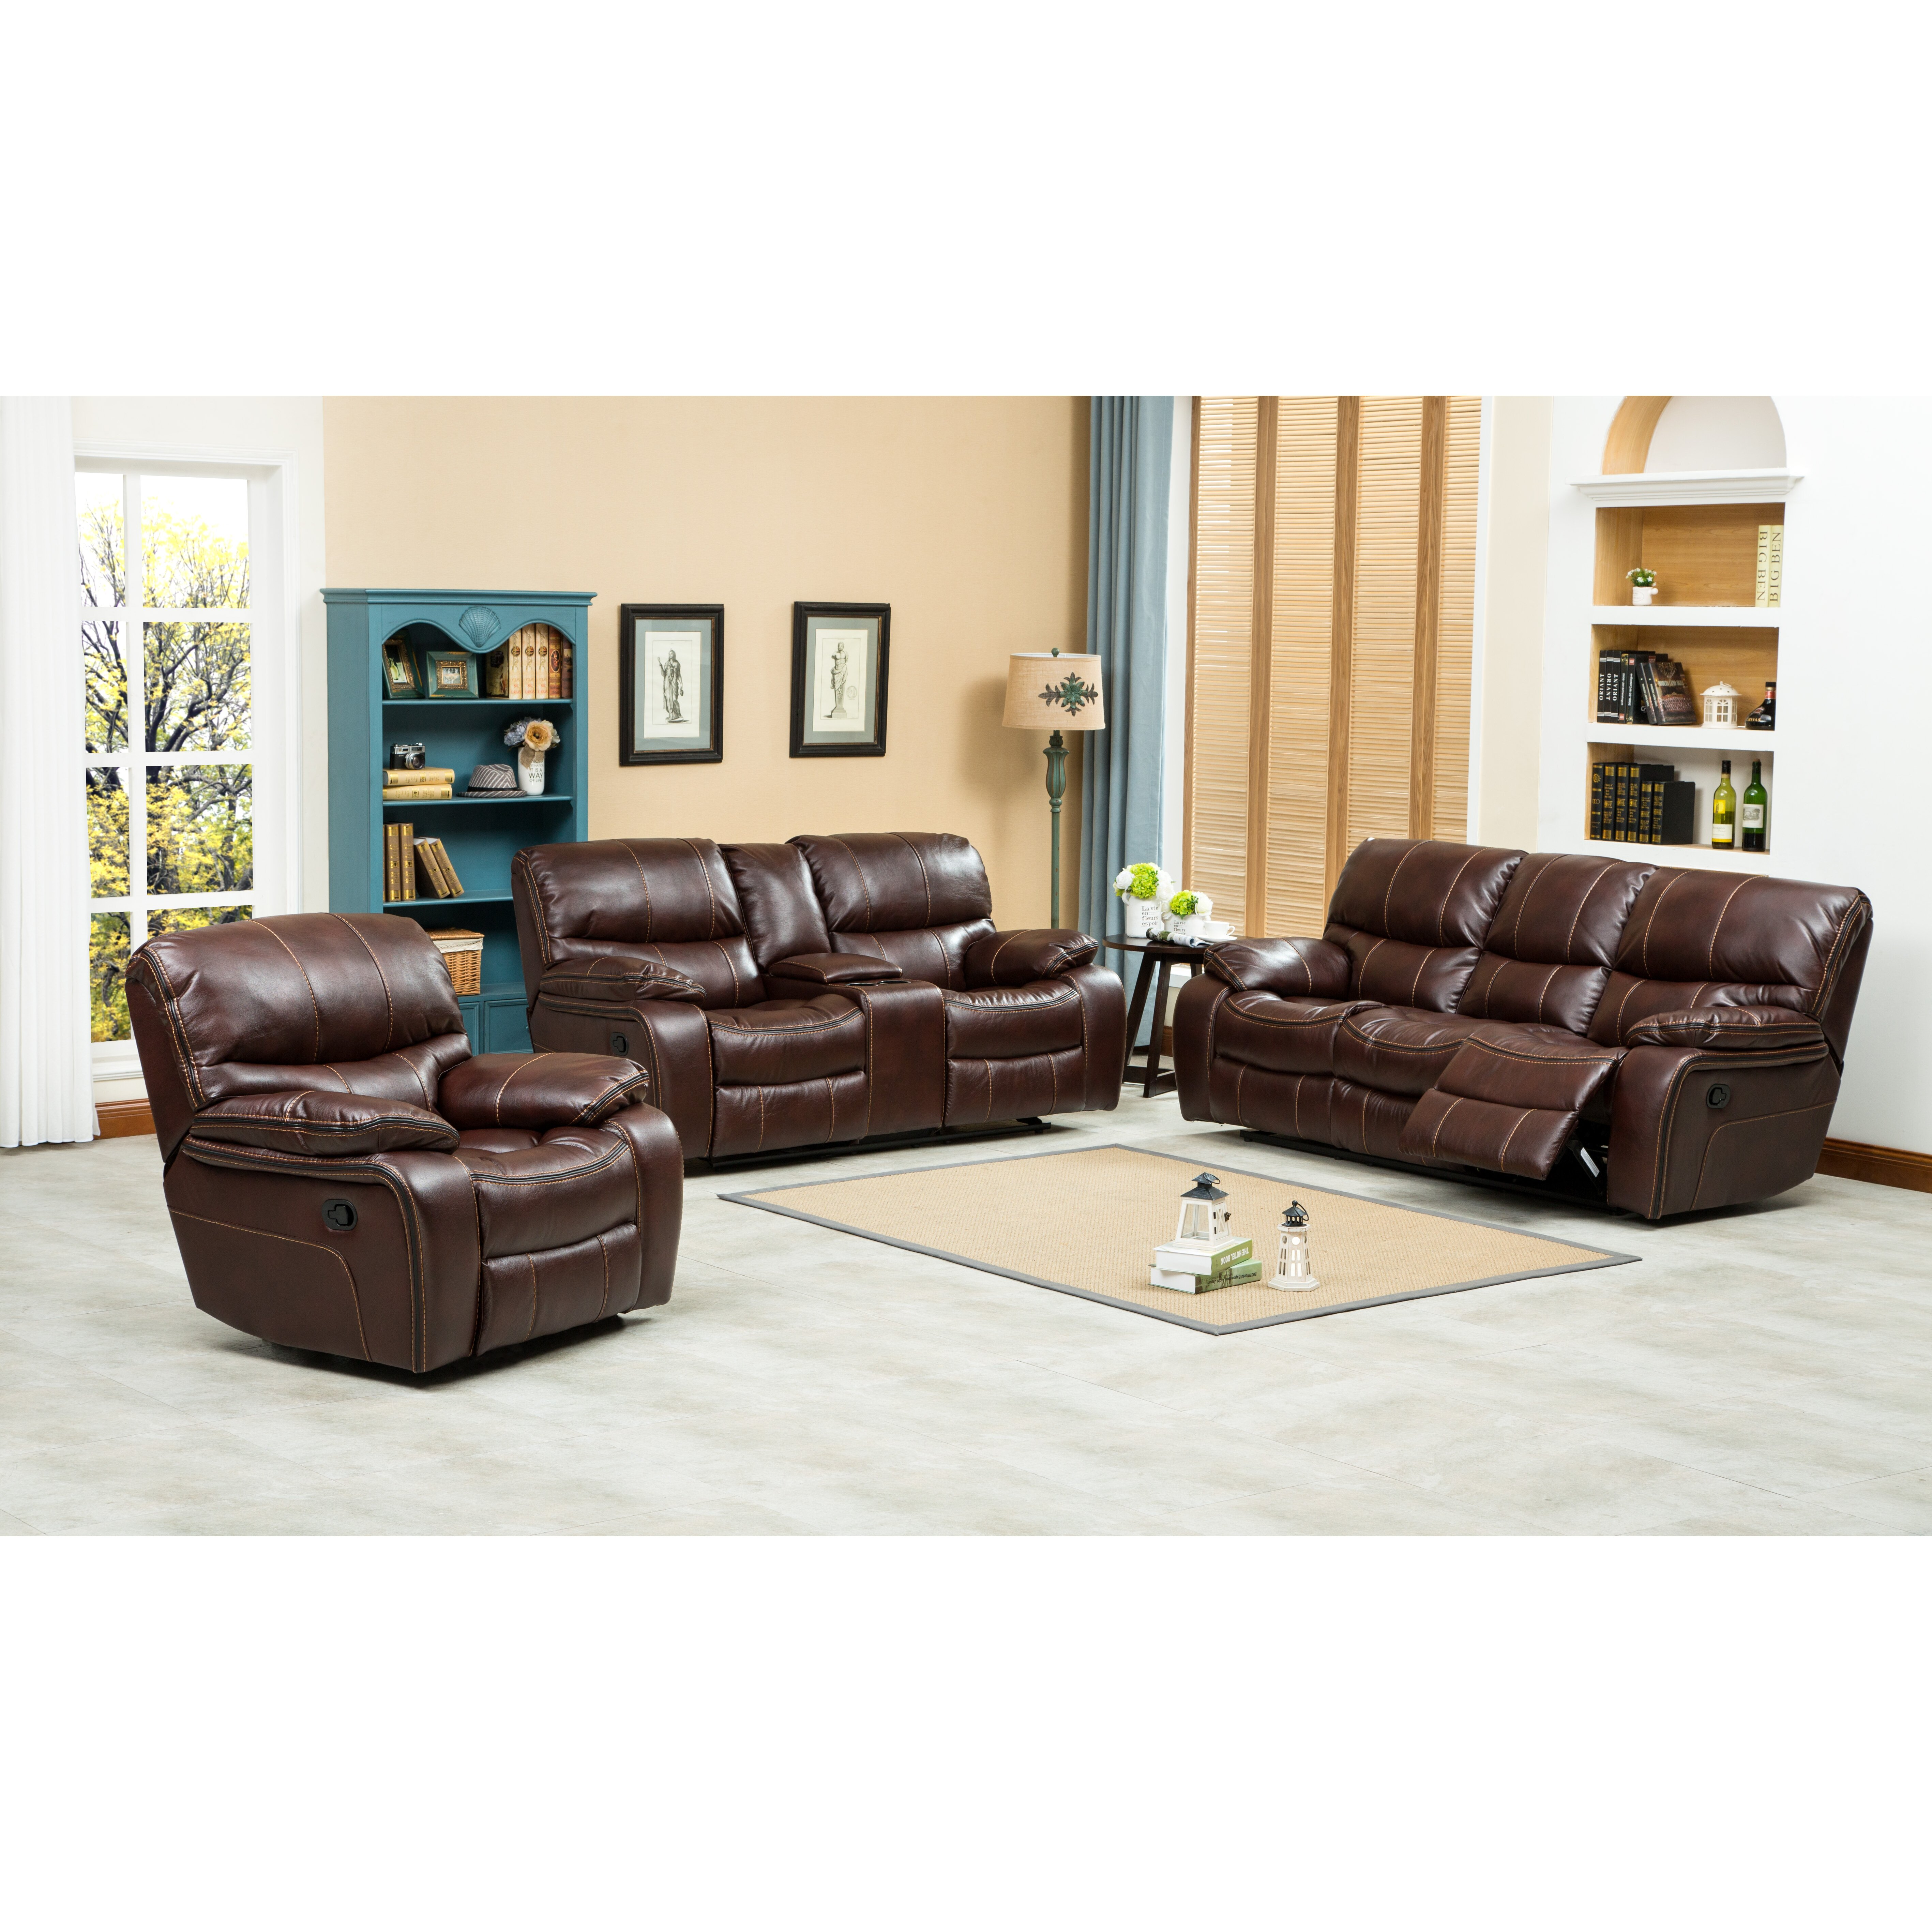 Three Piece Living Room Set Roundhill Furniture Ewa 3 Piece Reclining Leather Living Room Set